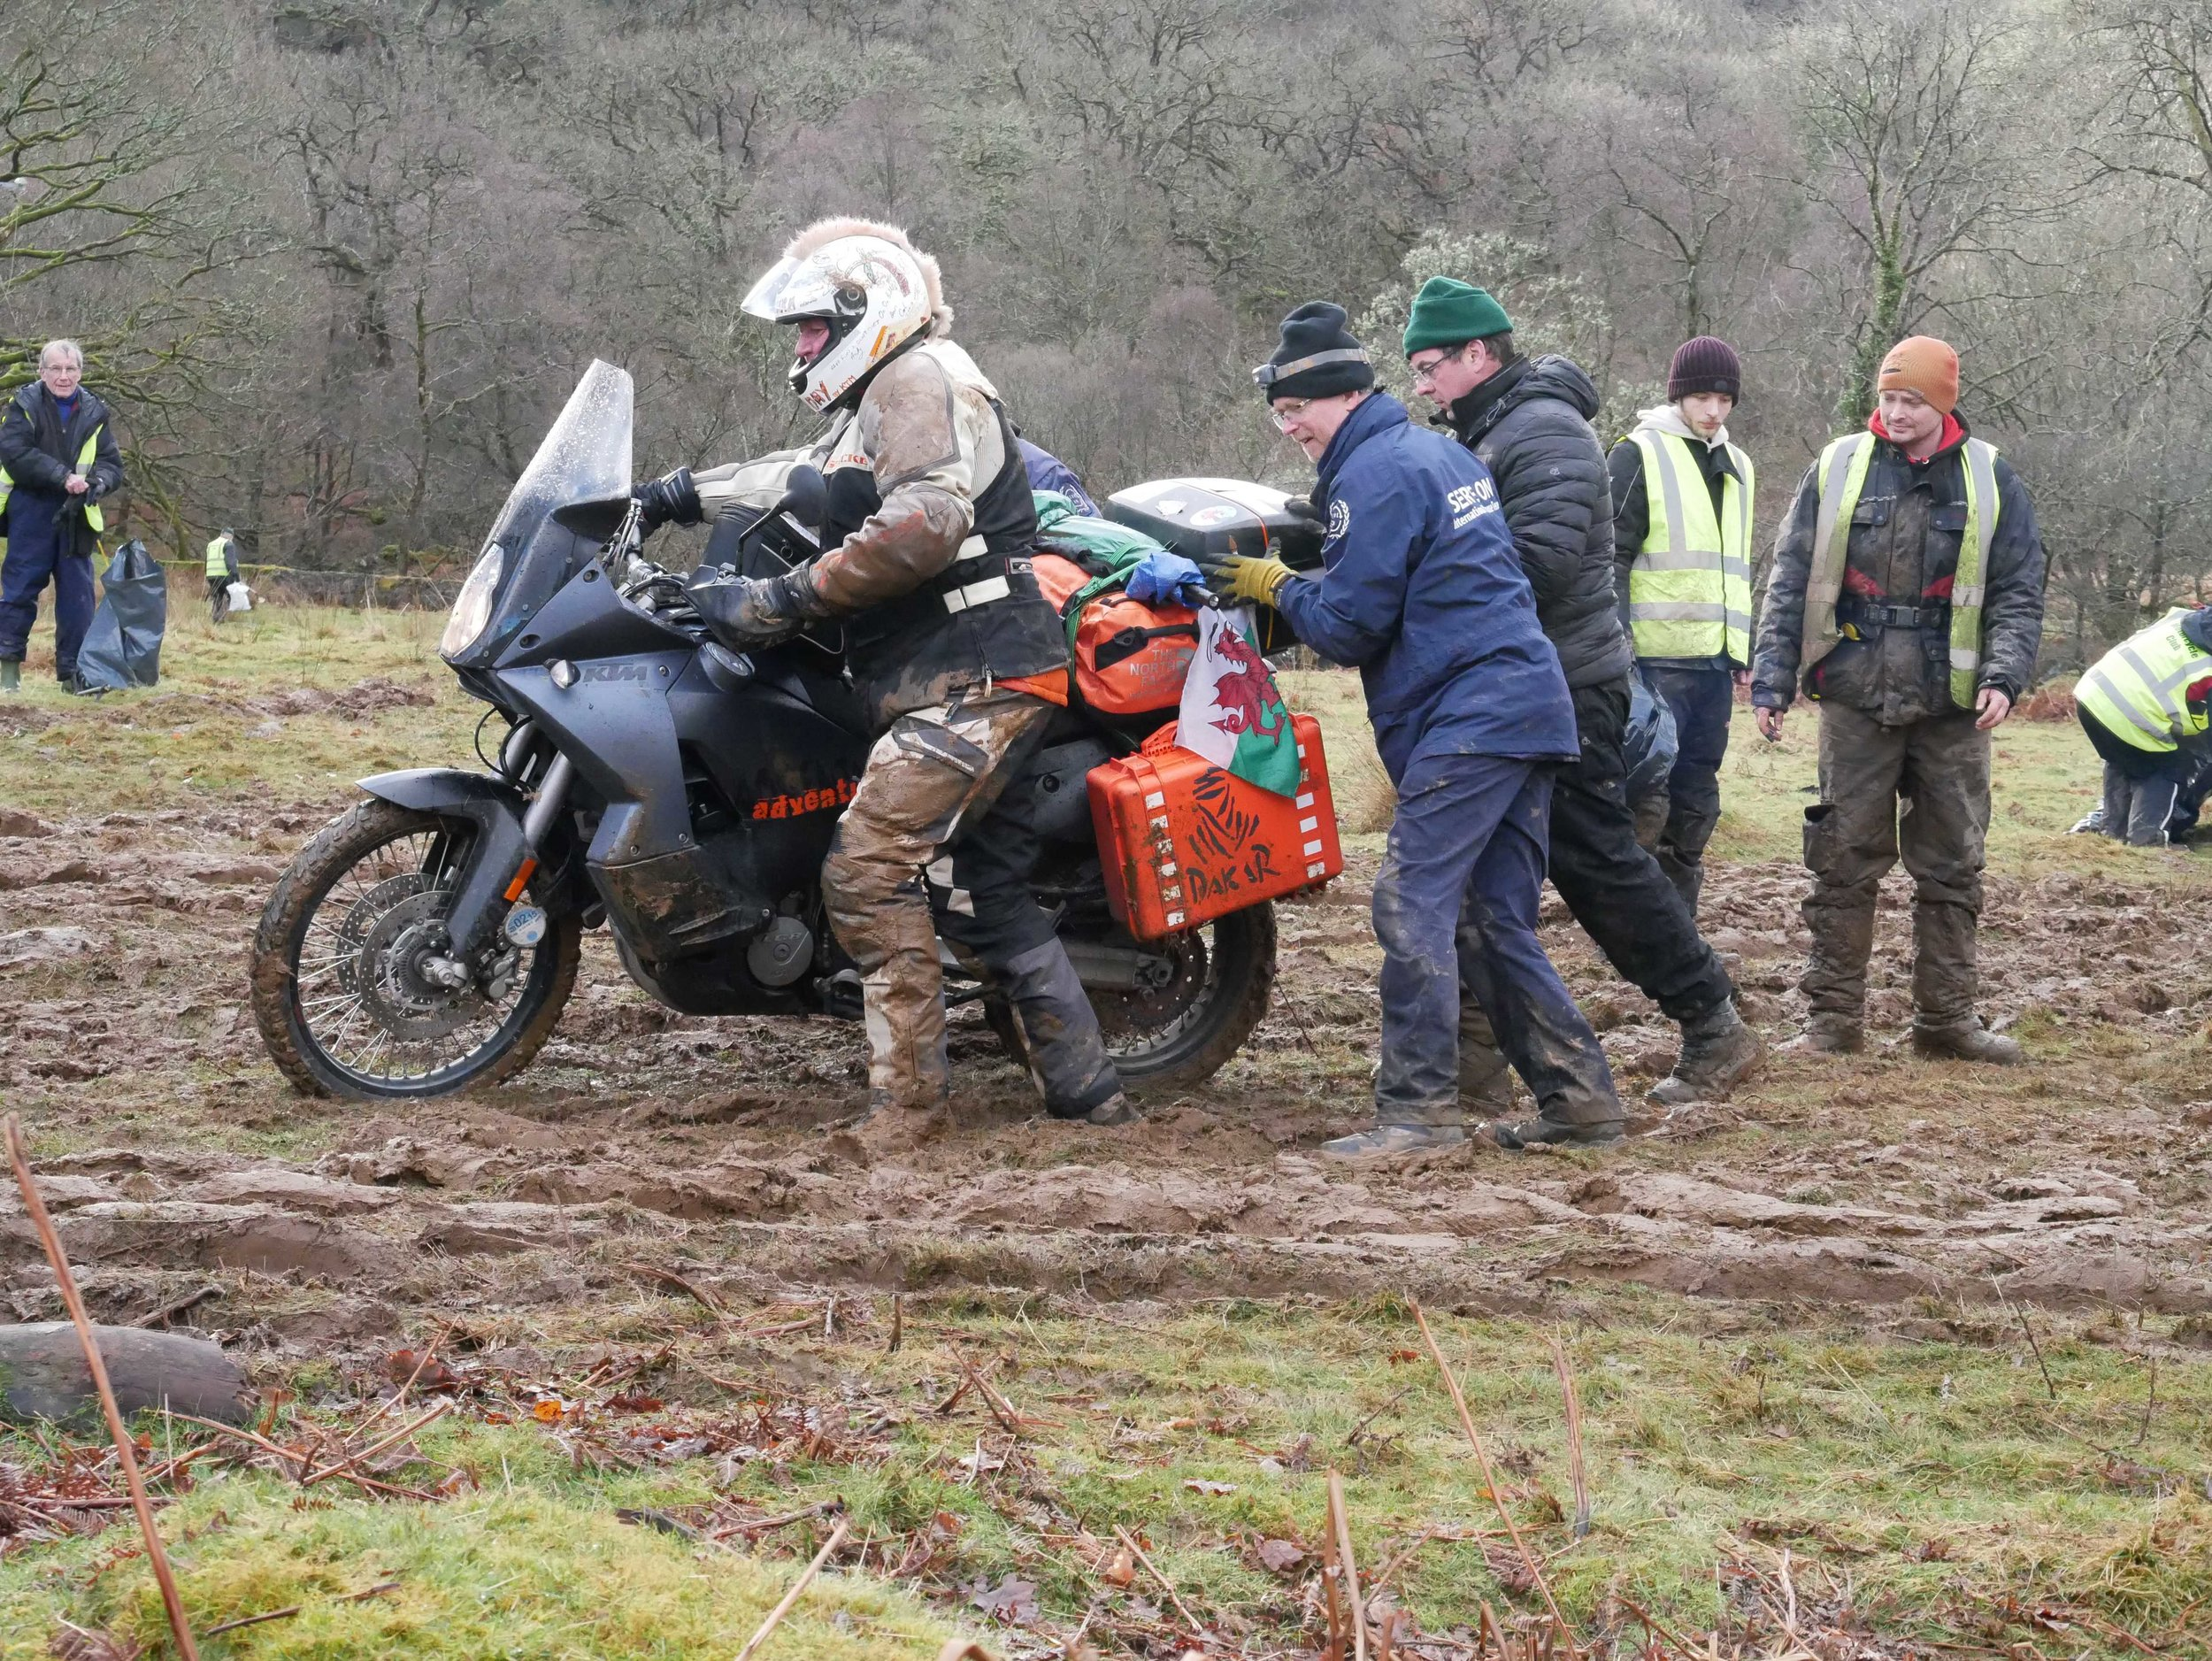 Serve on volunteers from the International Response Team, Community Resilience Team and Dog Team braved Storm Erik to provide safety cover at the famous Dragon Rally in North Wales - and to help a few bikes through the mud.